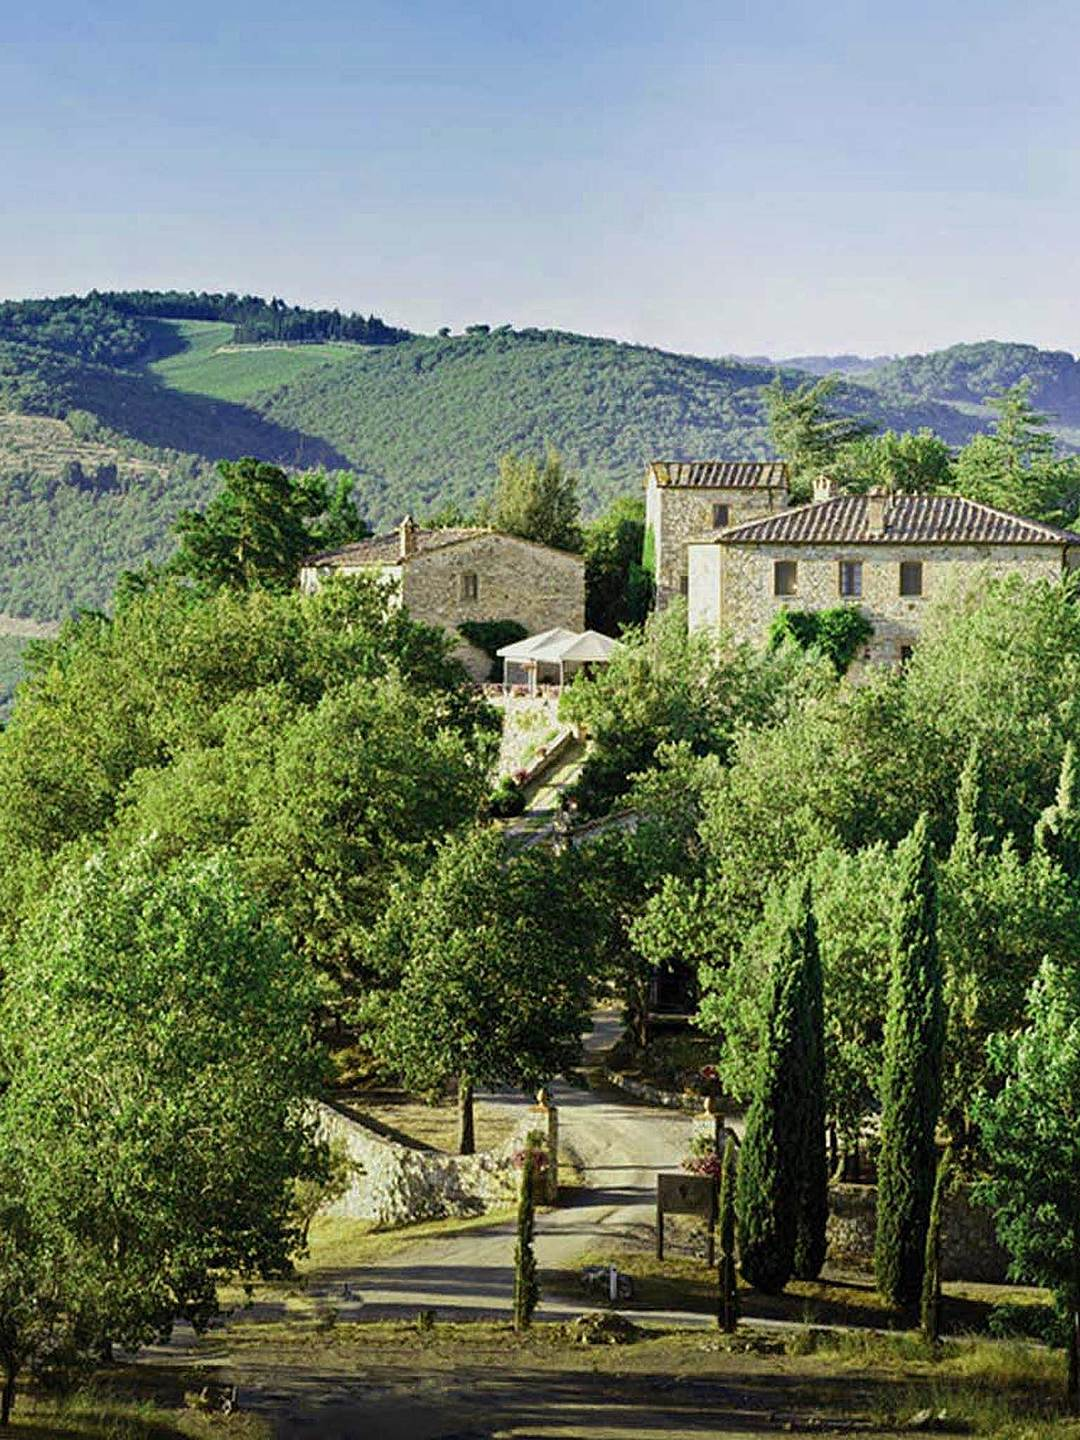 A small gathering, a secluded retreat, always with that touch of uniqueness.